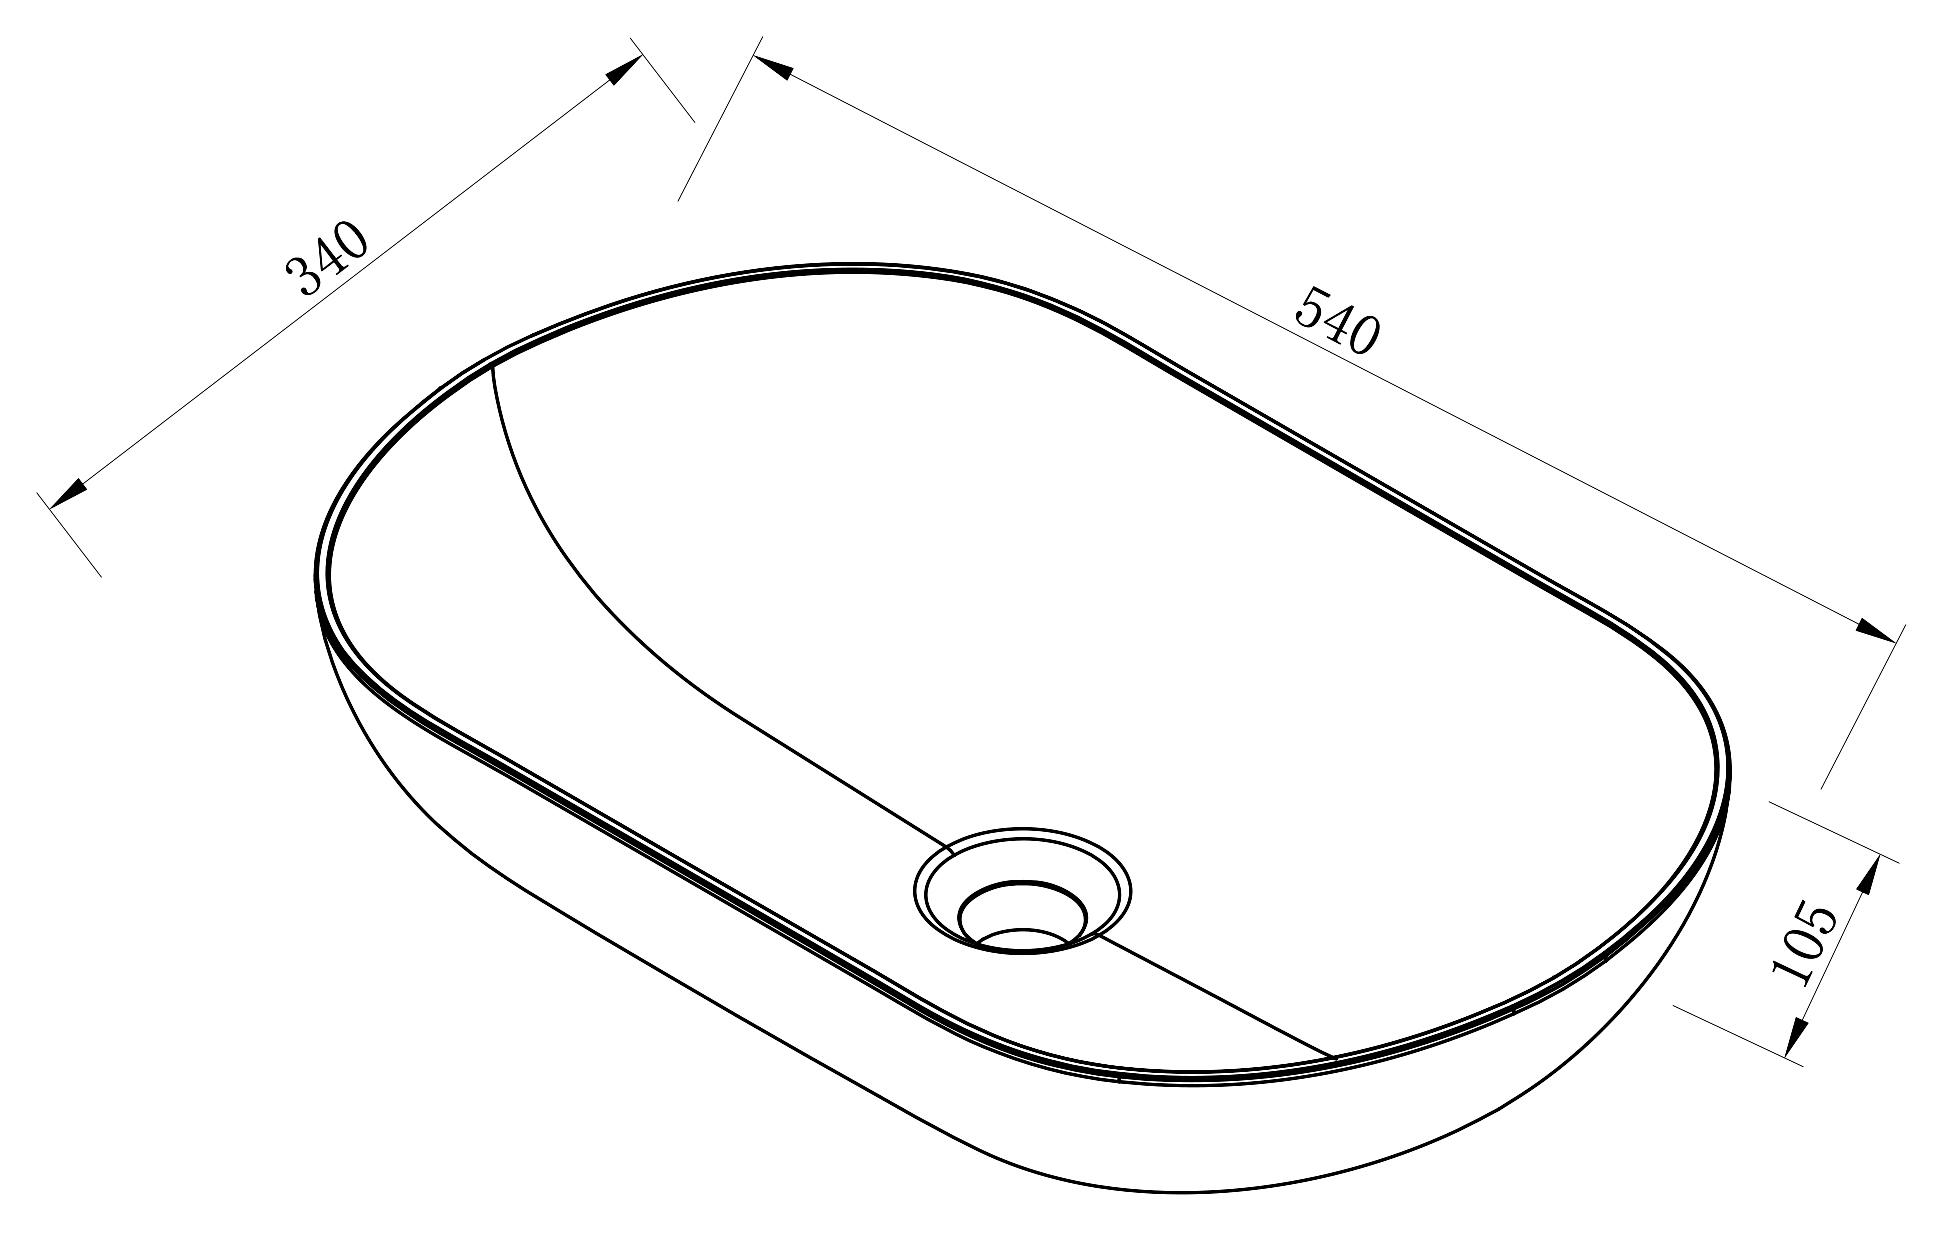 Counter top basin O-540 - Drawing